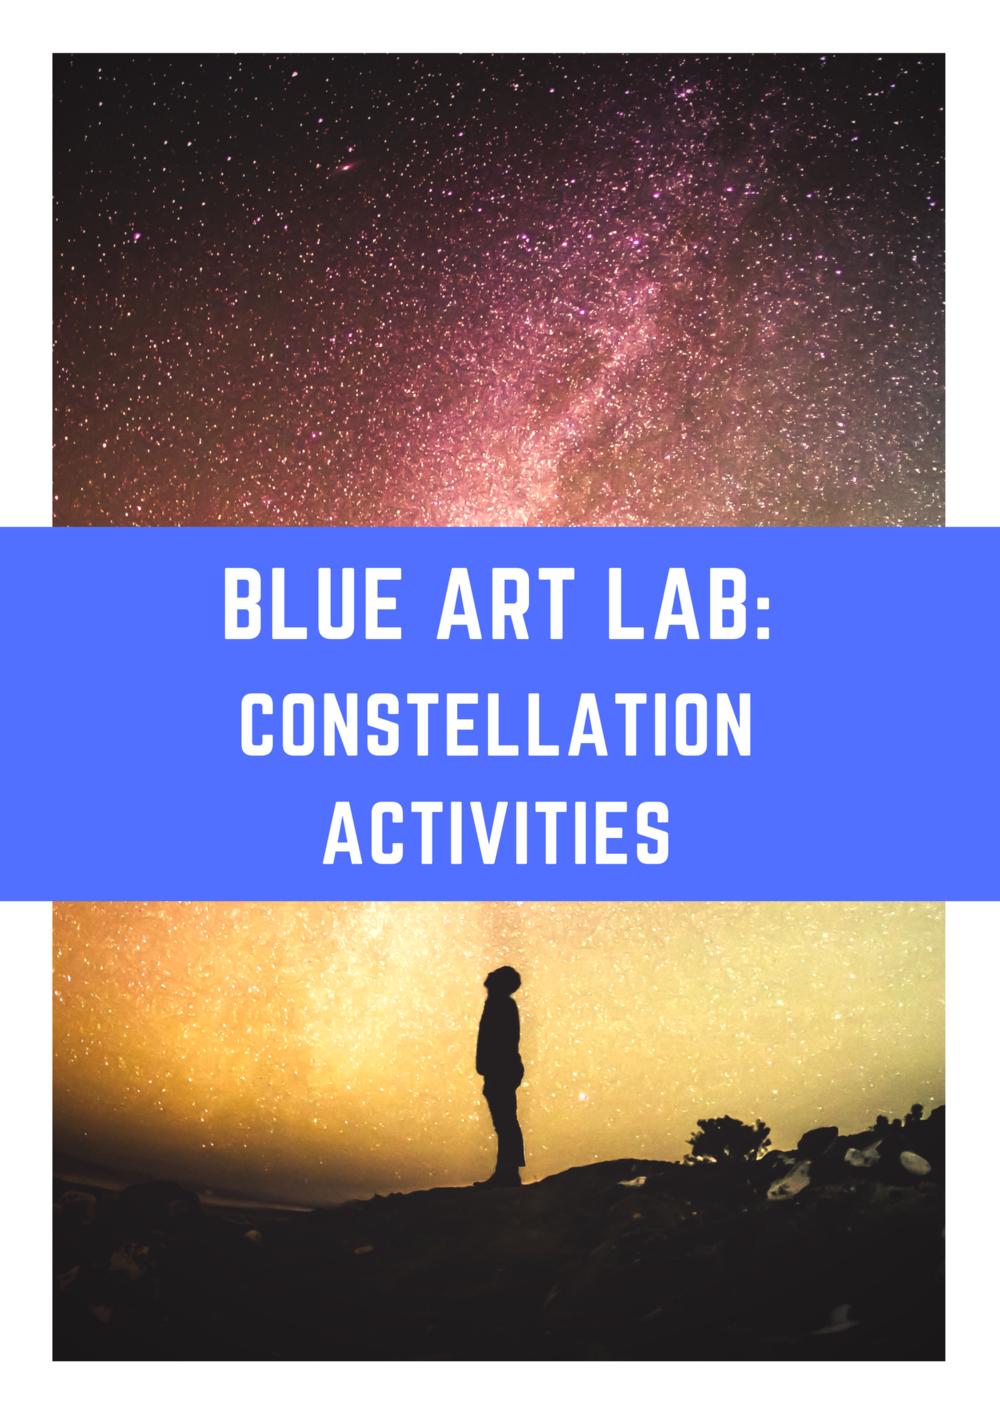 Blue Art Lab